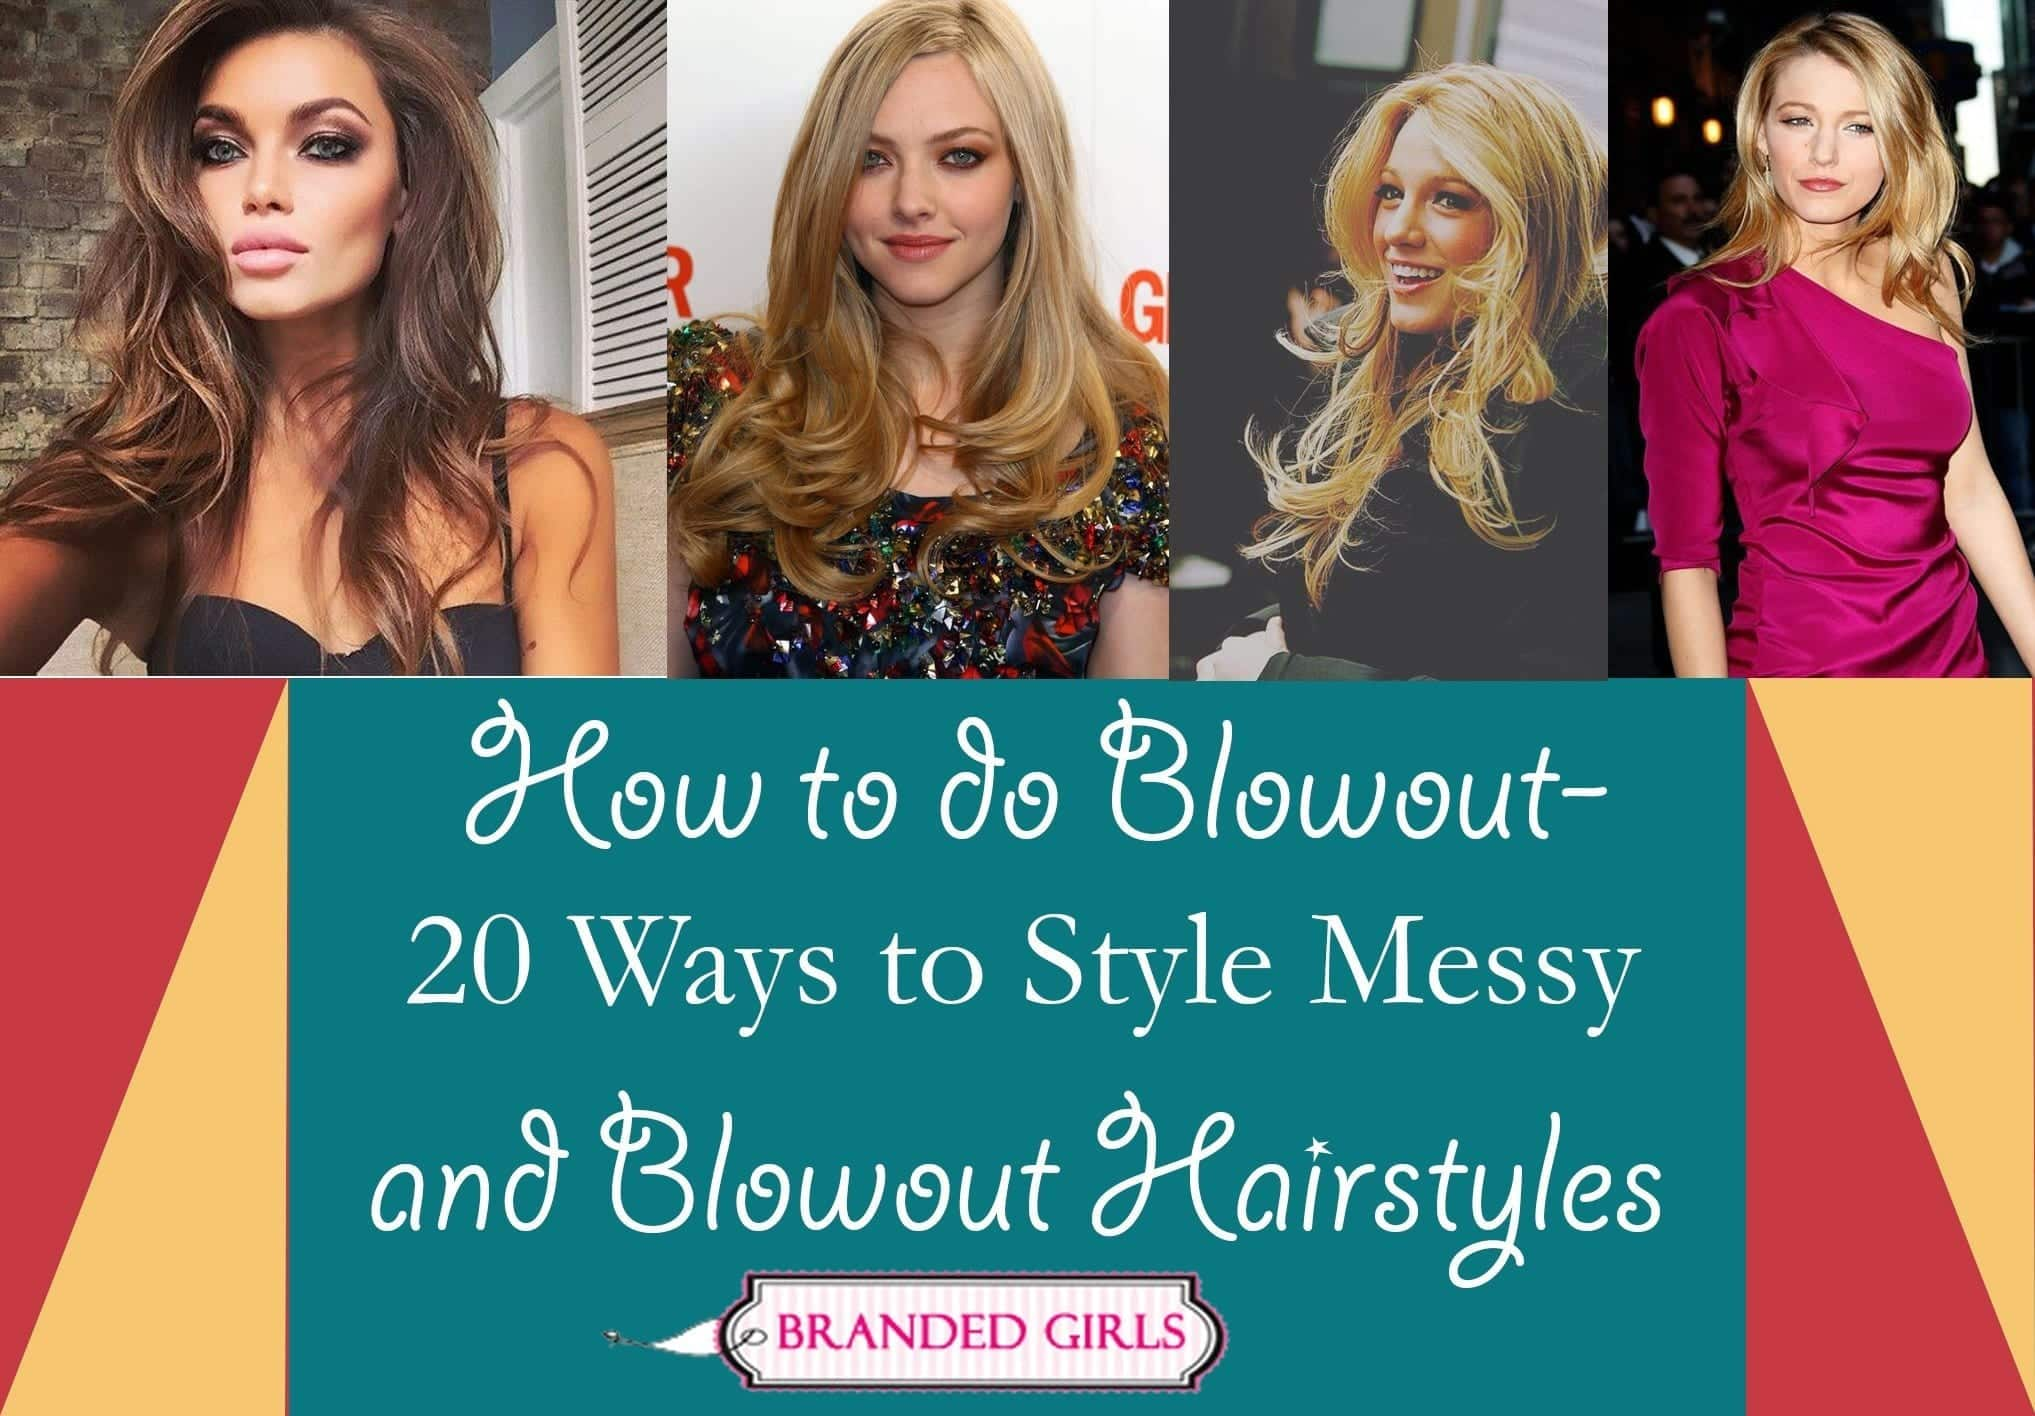 20-ways-to-style-messy-and-blowout-style How to do Blowout-20 Ideas for Messy and Blowout Hairstyles